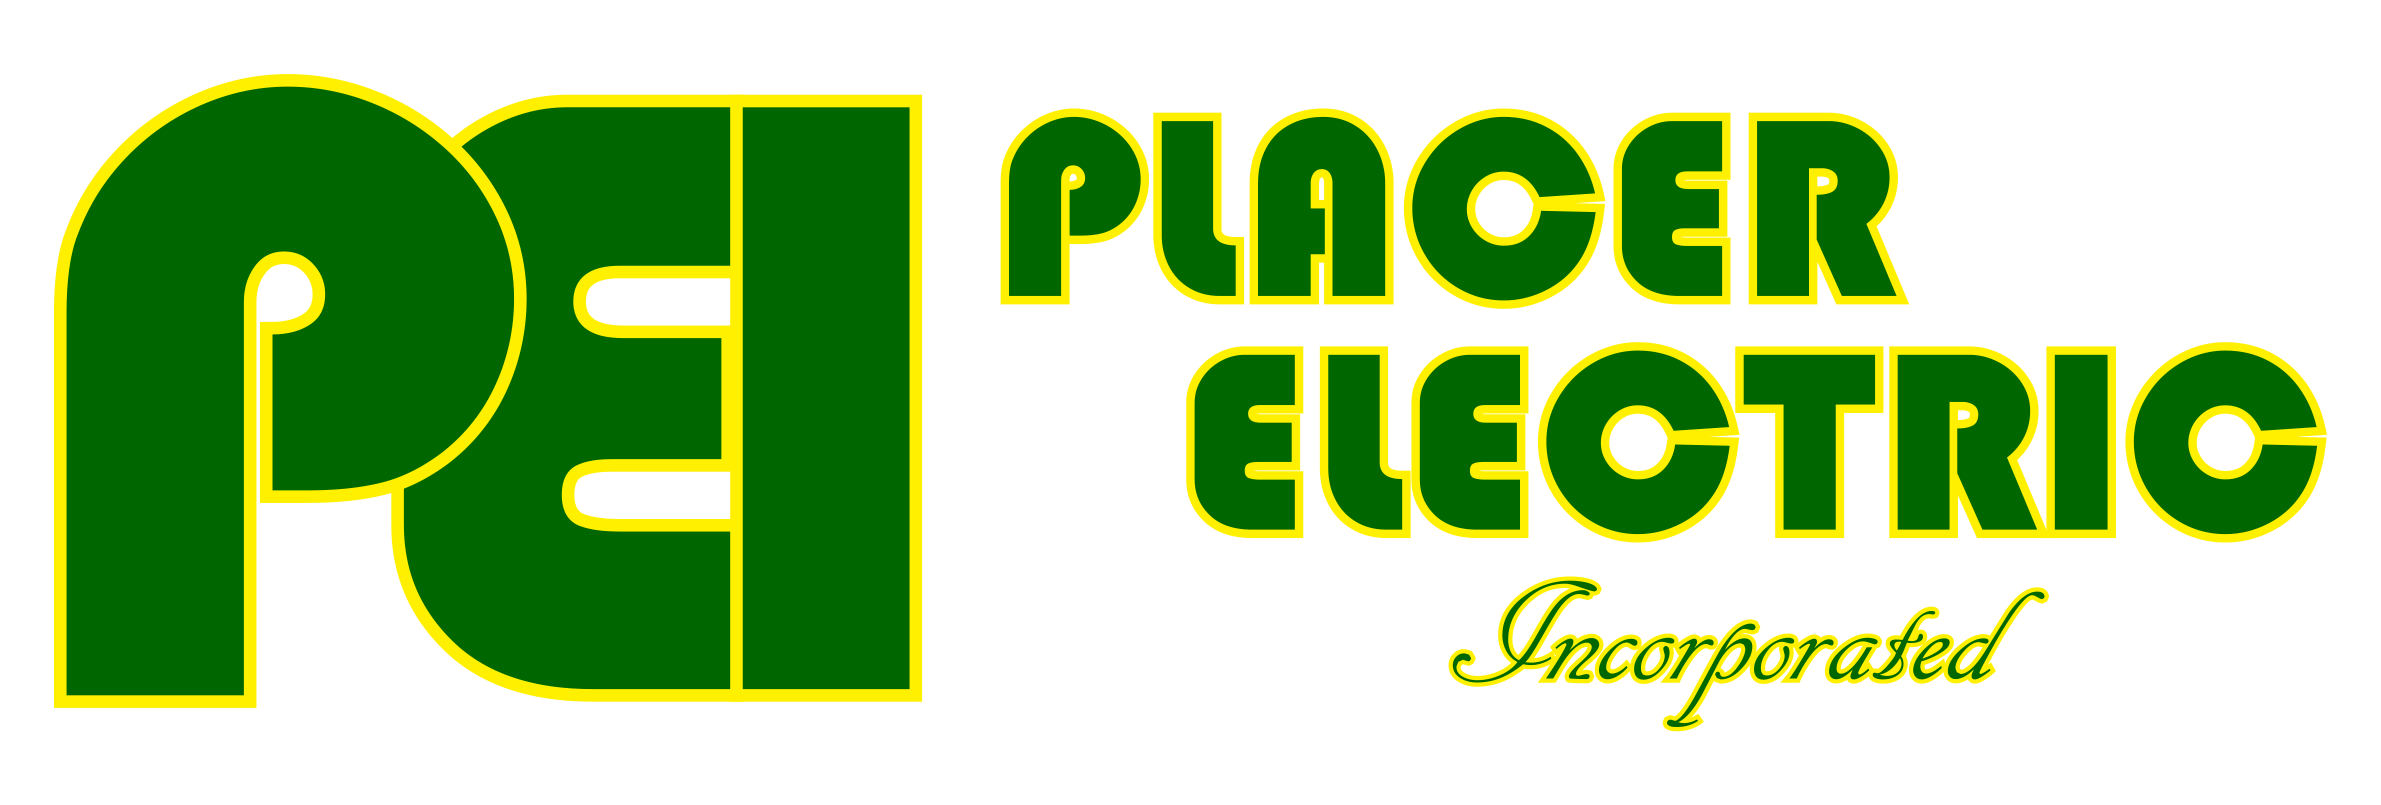 Placer Electric, Incorporated